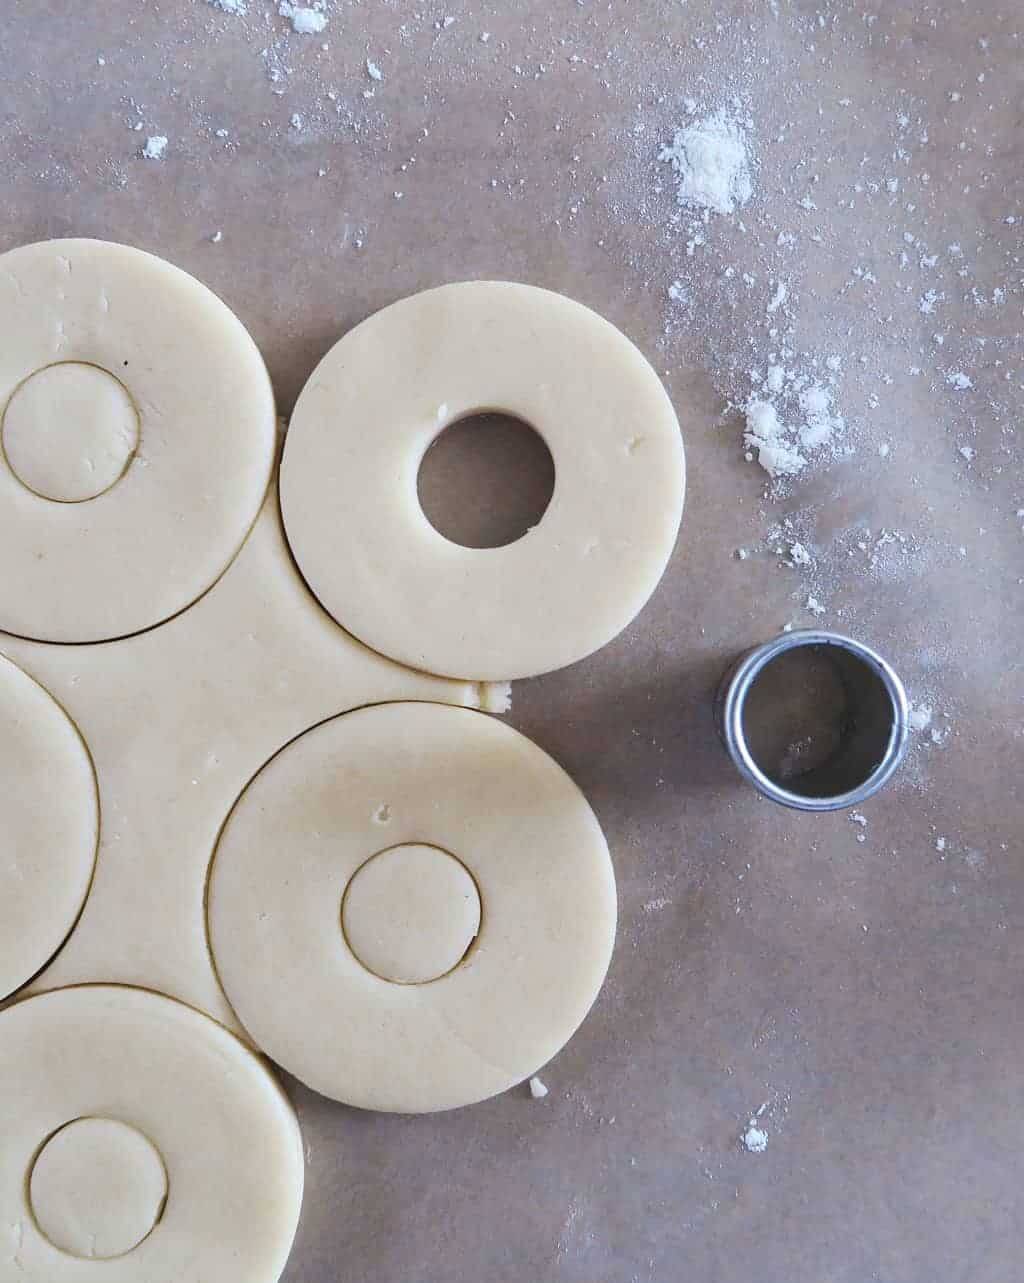 Shortbread cookie dough, cut into rounds, waiting to be turned into edible flower biscuits